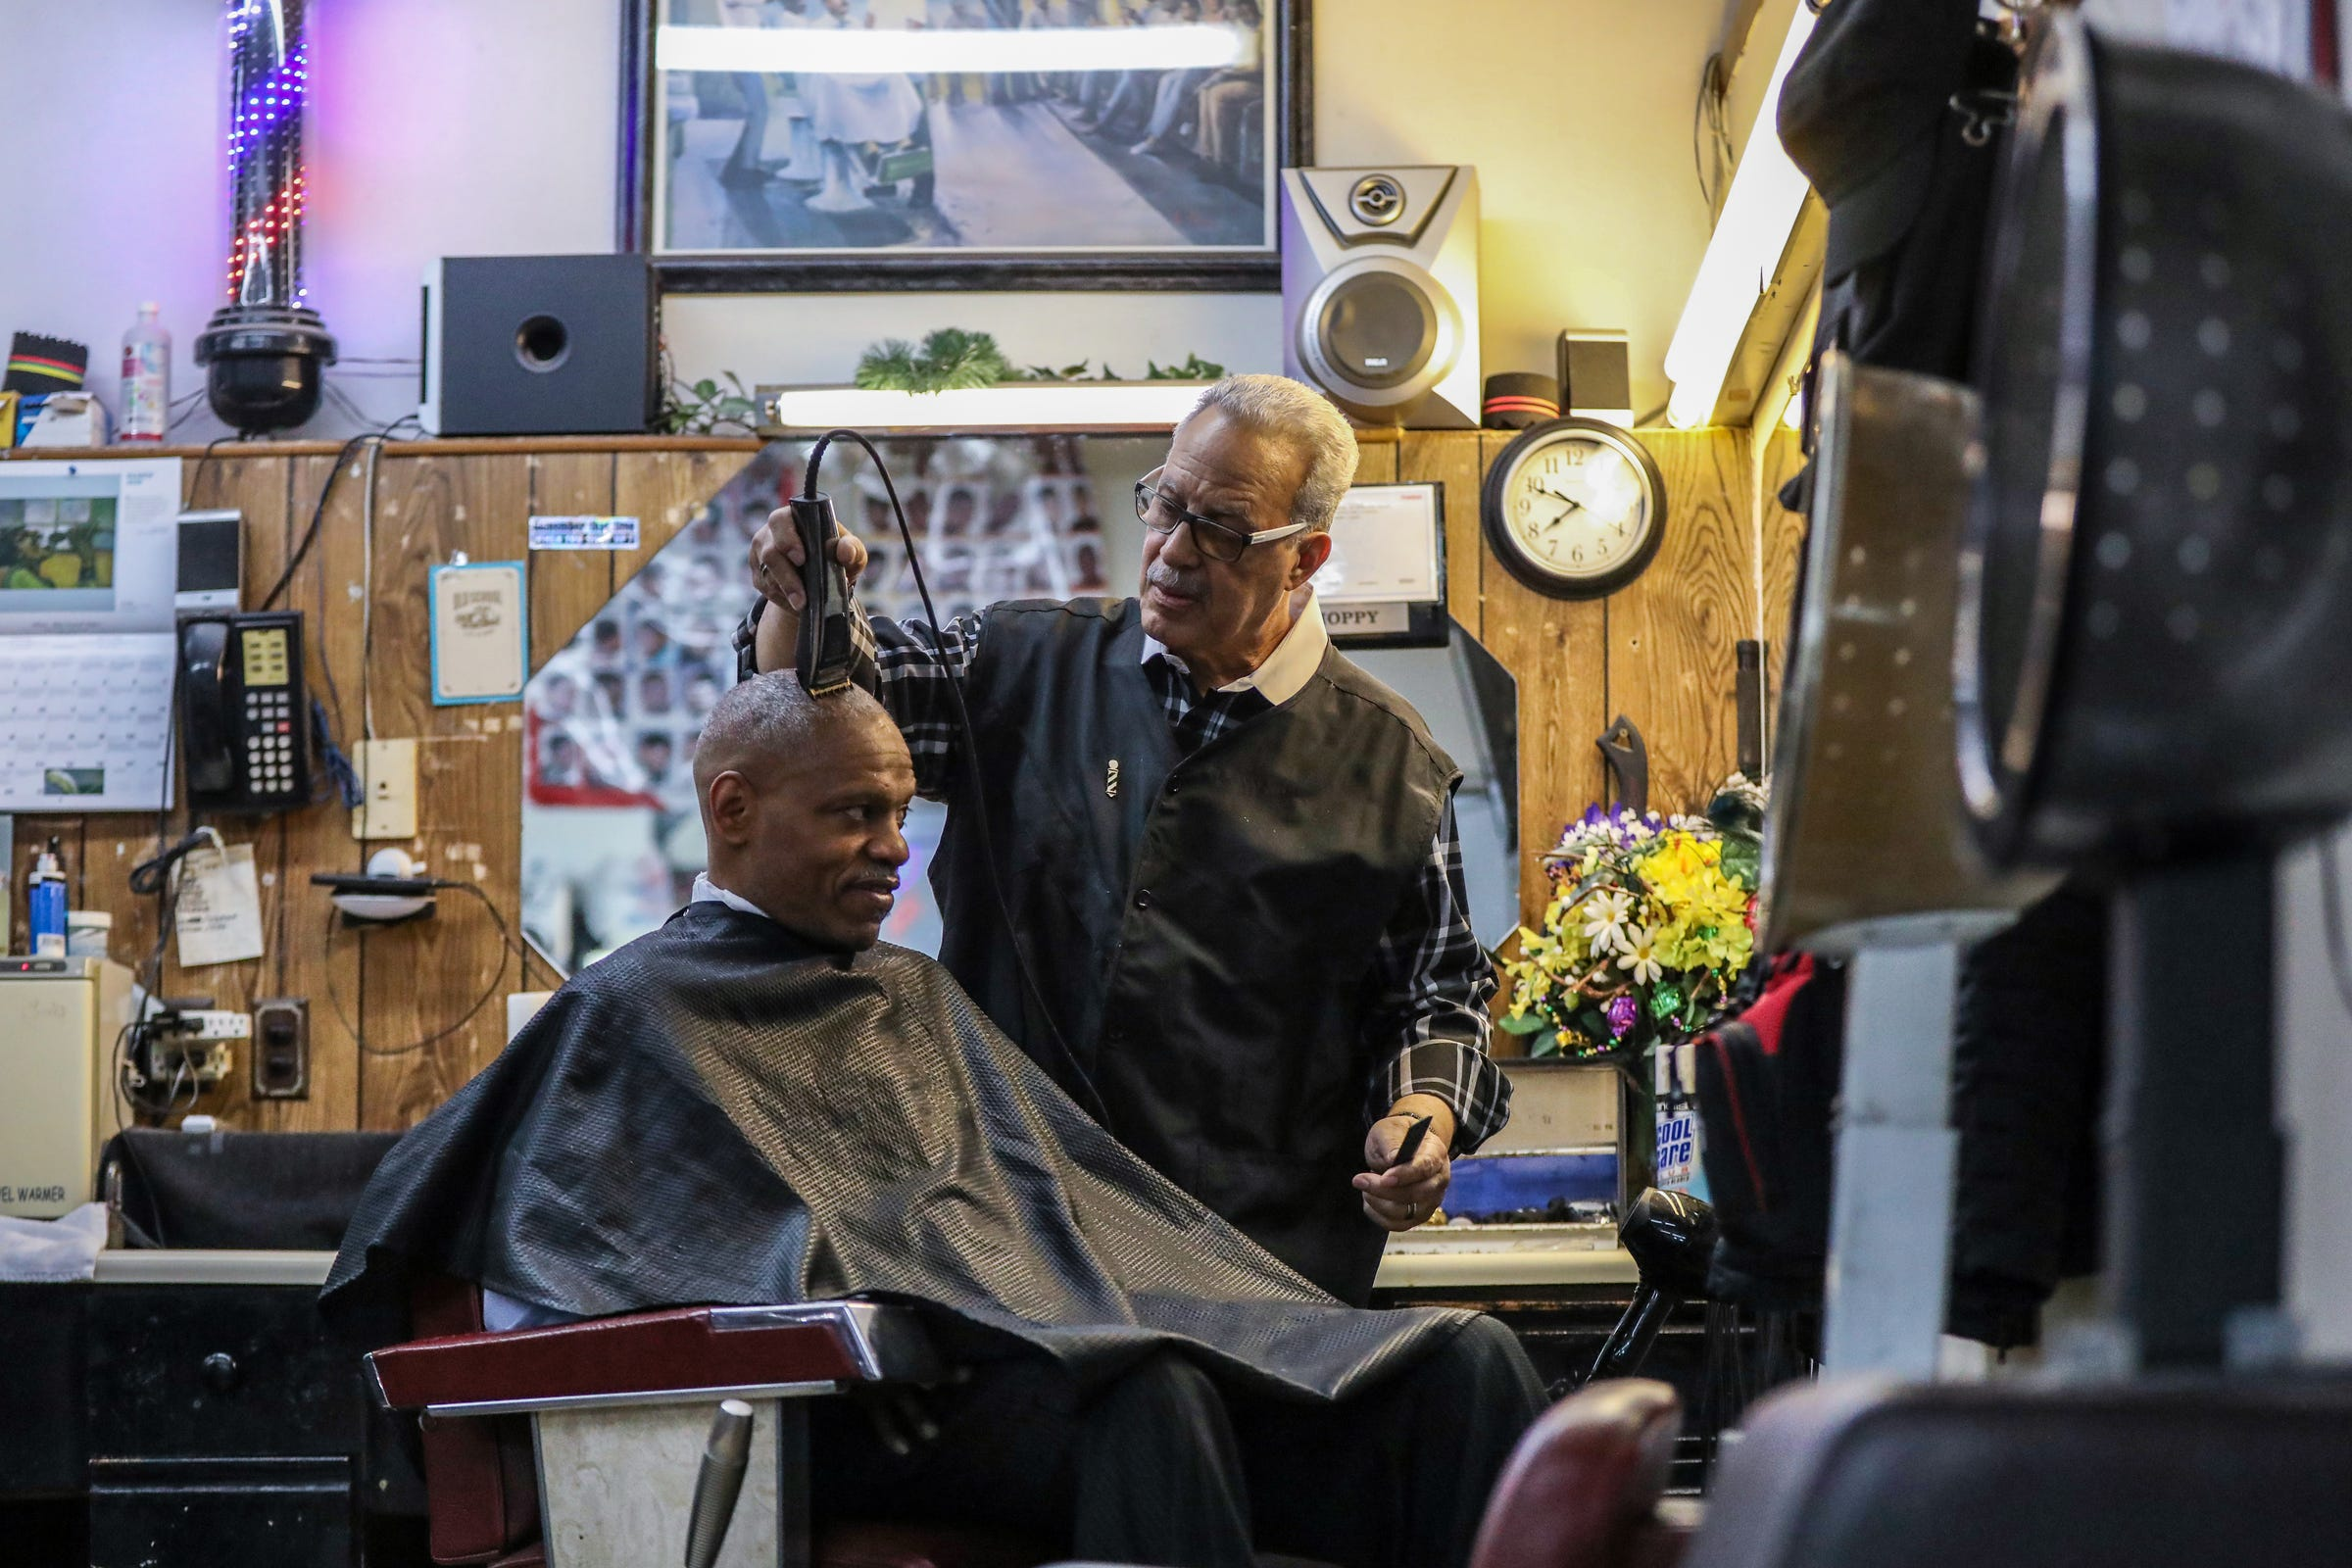 Hobson ÒHoppyÓ Colvin, has cut hair in Detroit for 58 years, including many clients that obtained stardom through music, and others clients, like Lee Robinson (seated), whose life has been heavily influenced by music and music events in Detroit while working in sales for radio station WJLB and now iHeartRadio as an account manager. Hoppy cuts Robinson's hair as they talk about music and it's history, while tunes from the stereo fill the shop.